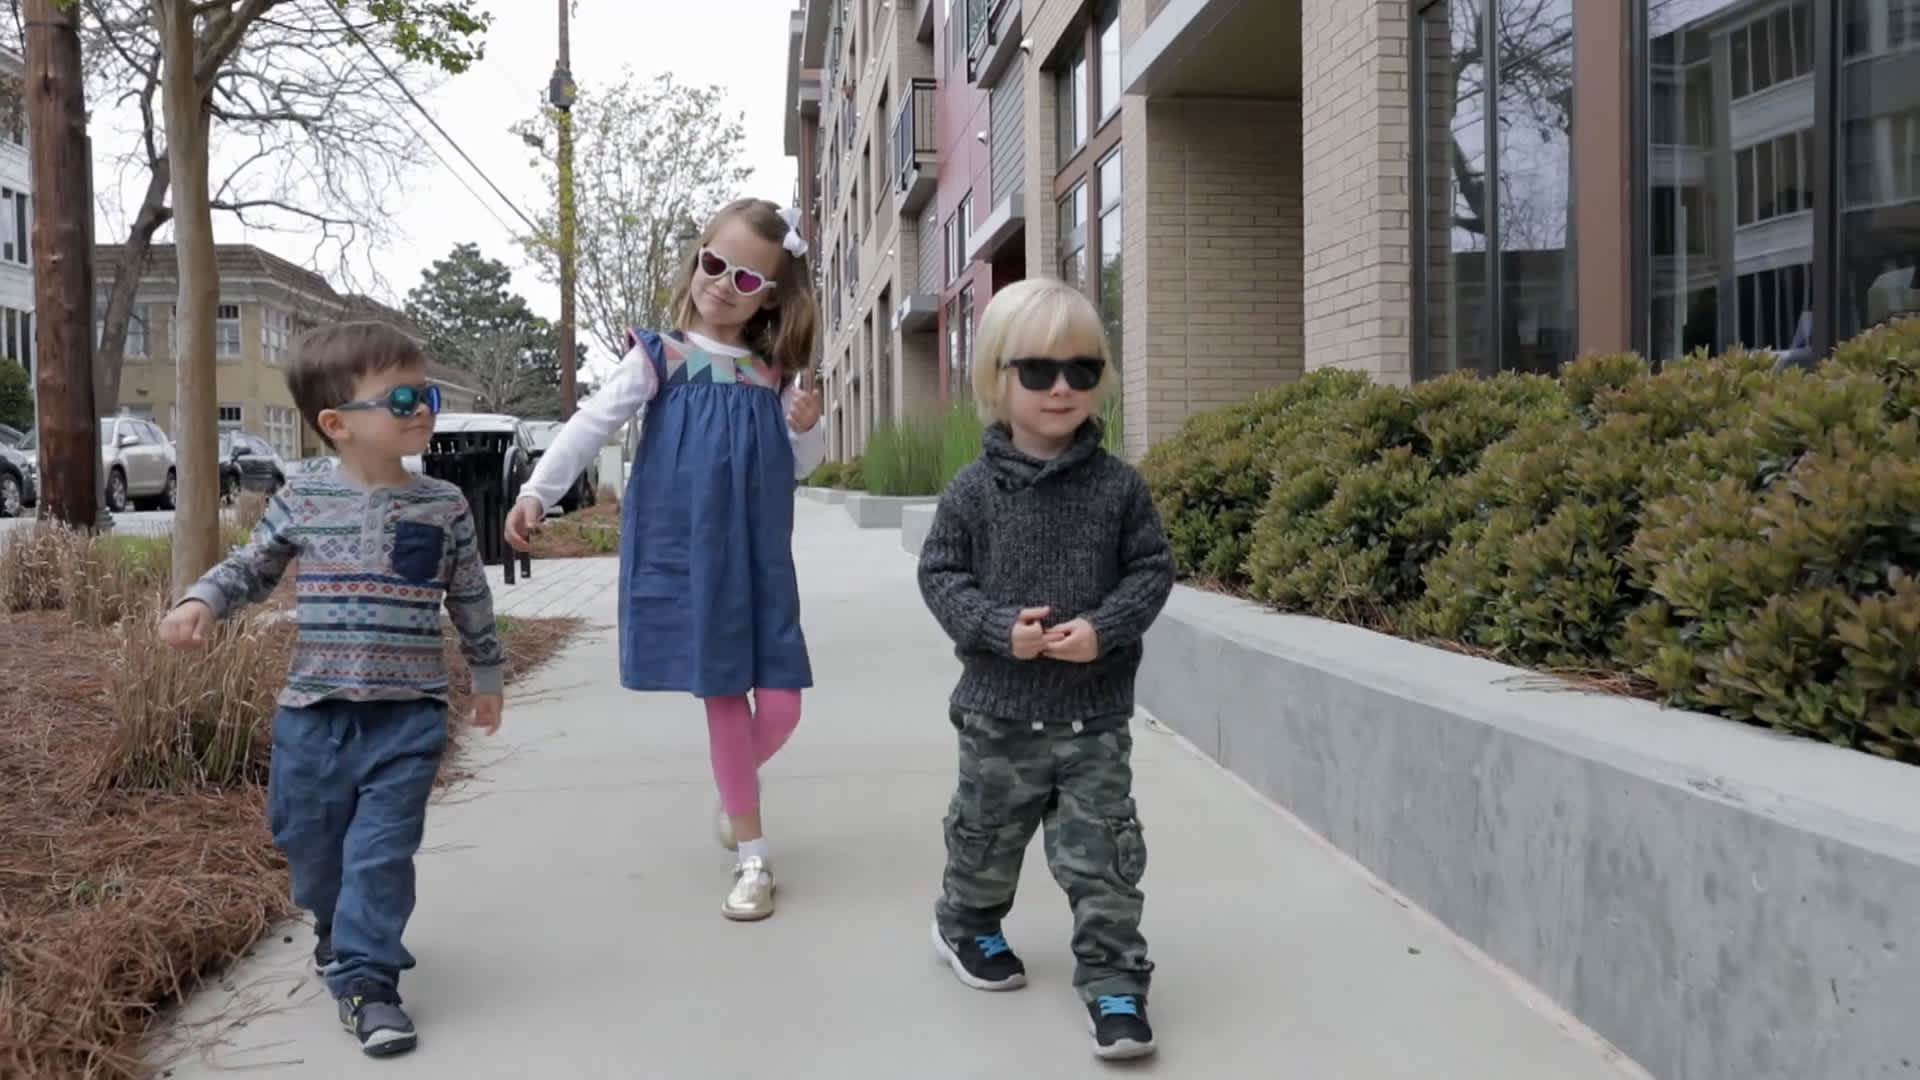 3869b88a016a Babiators sunglasses for kids bringing in millions for military family